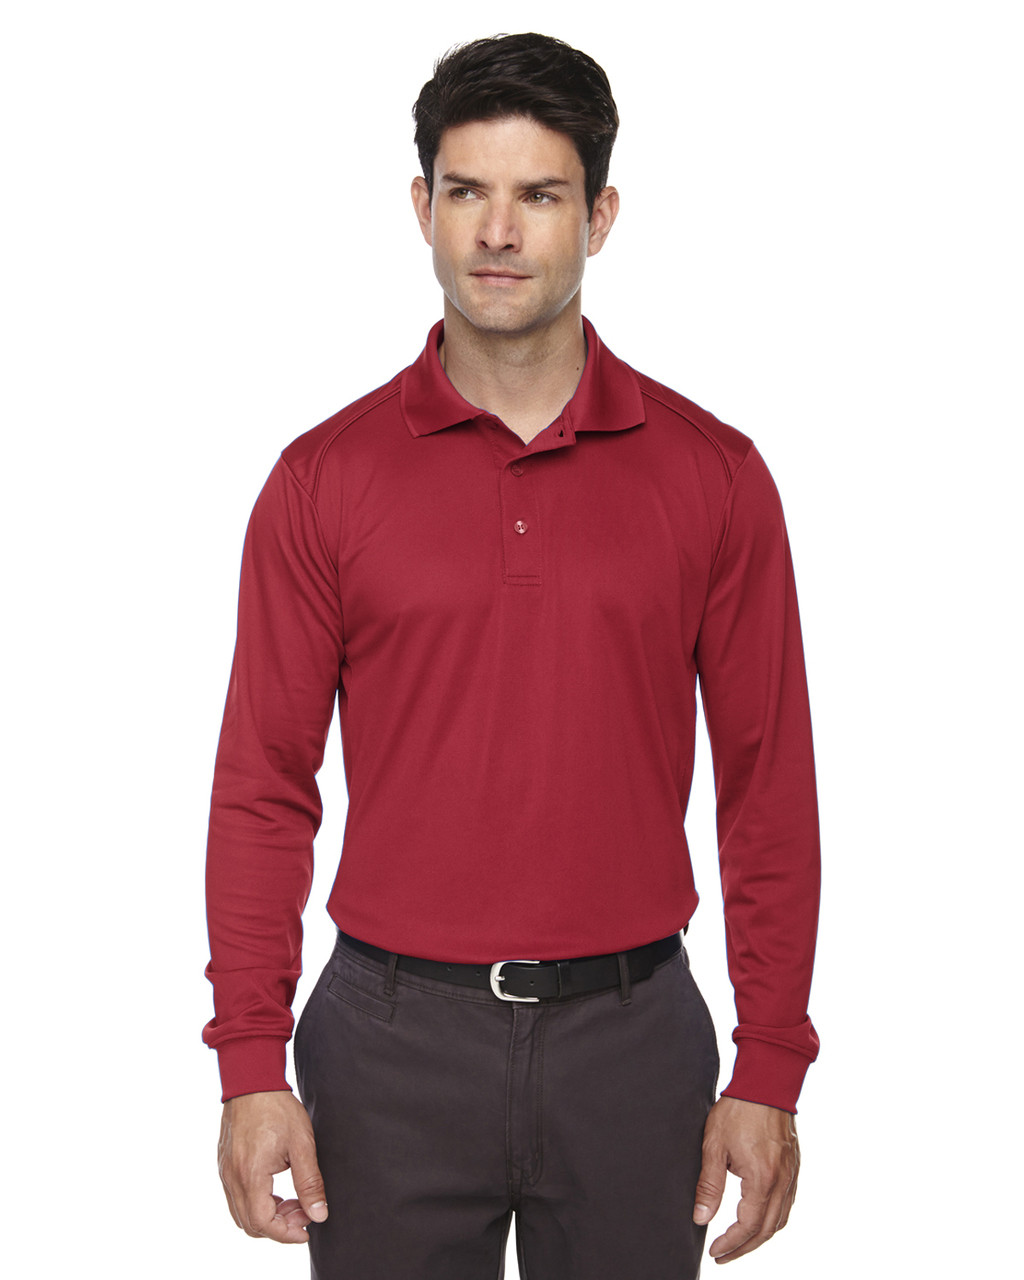 Classic Red 85111 Ash City - Extreme Eperformance Men's Long-Sleeve Polo Shirt